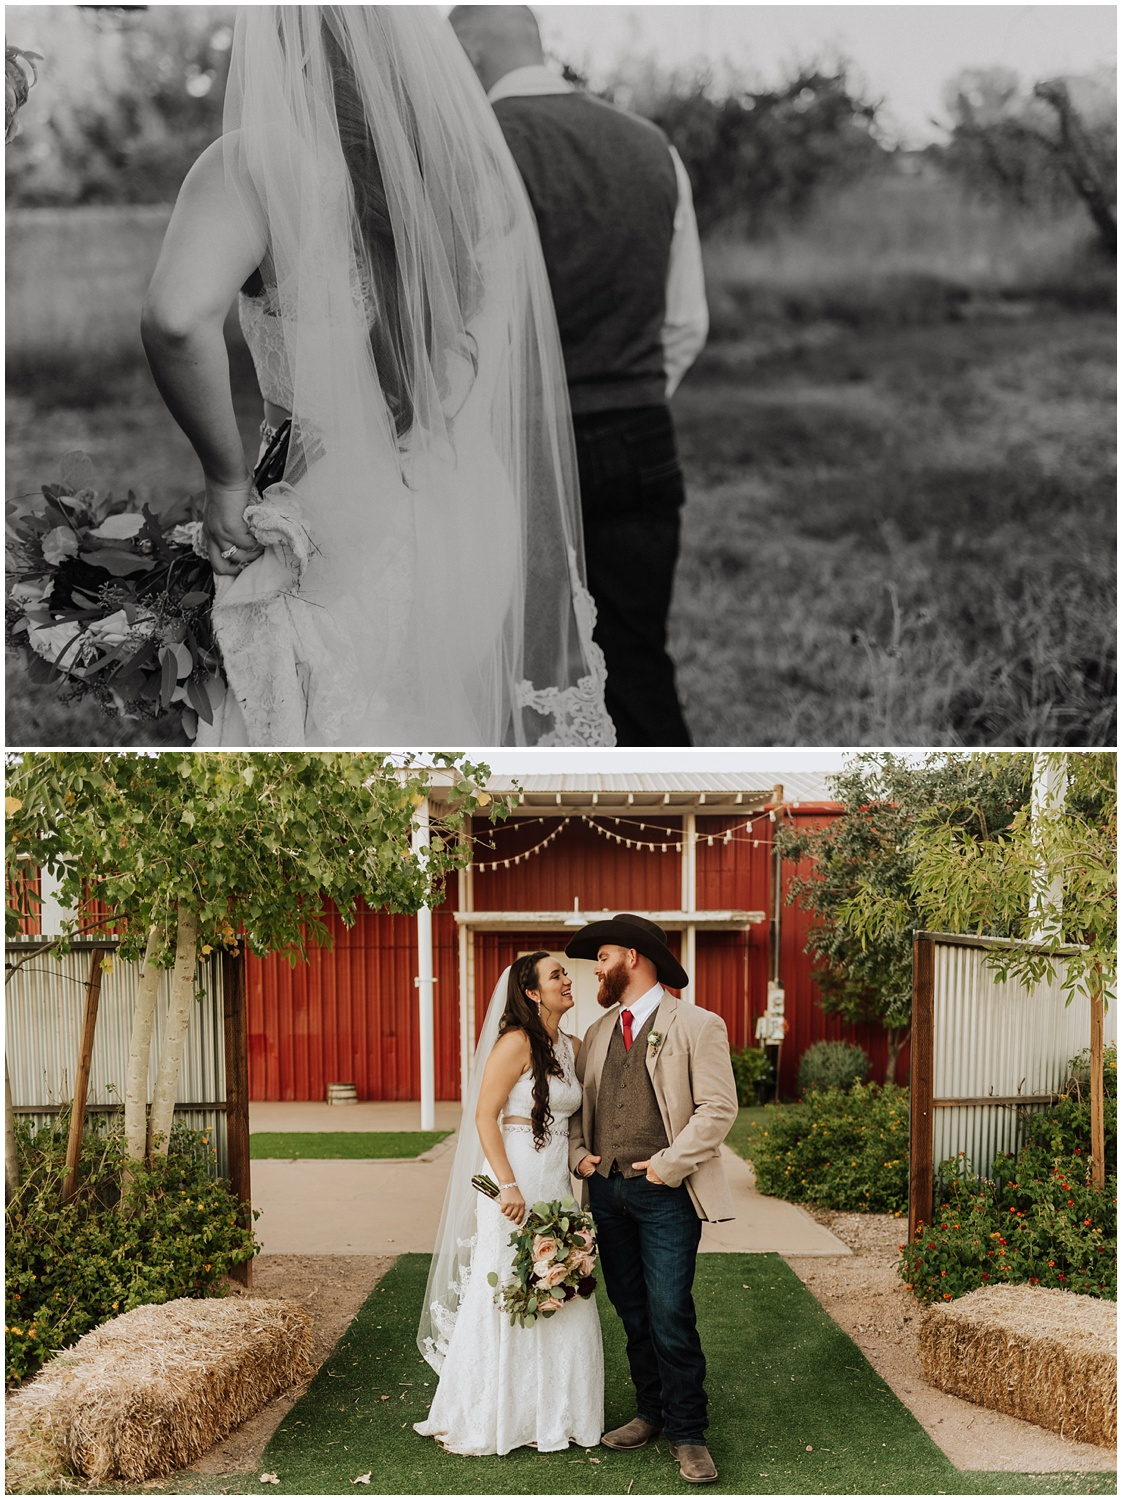 Photojournalism style wedding documented at Schnepf Farms in Queen Creek, Arizona.